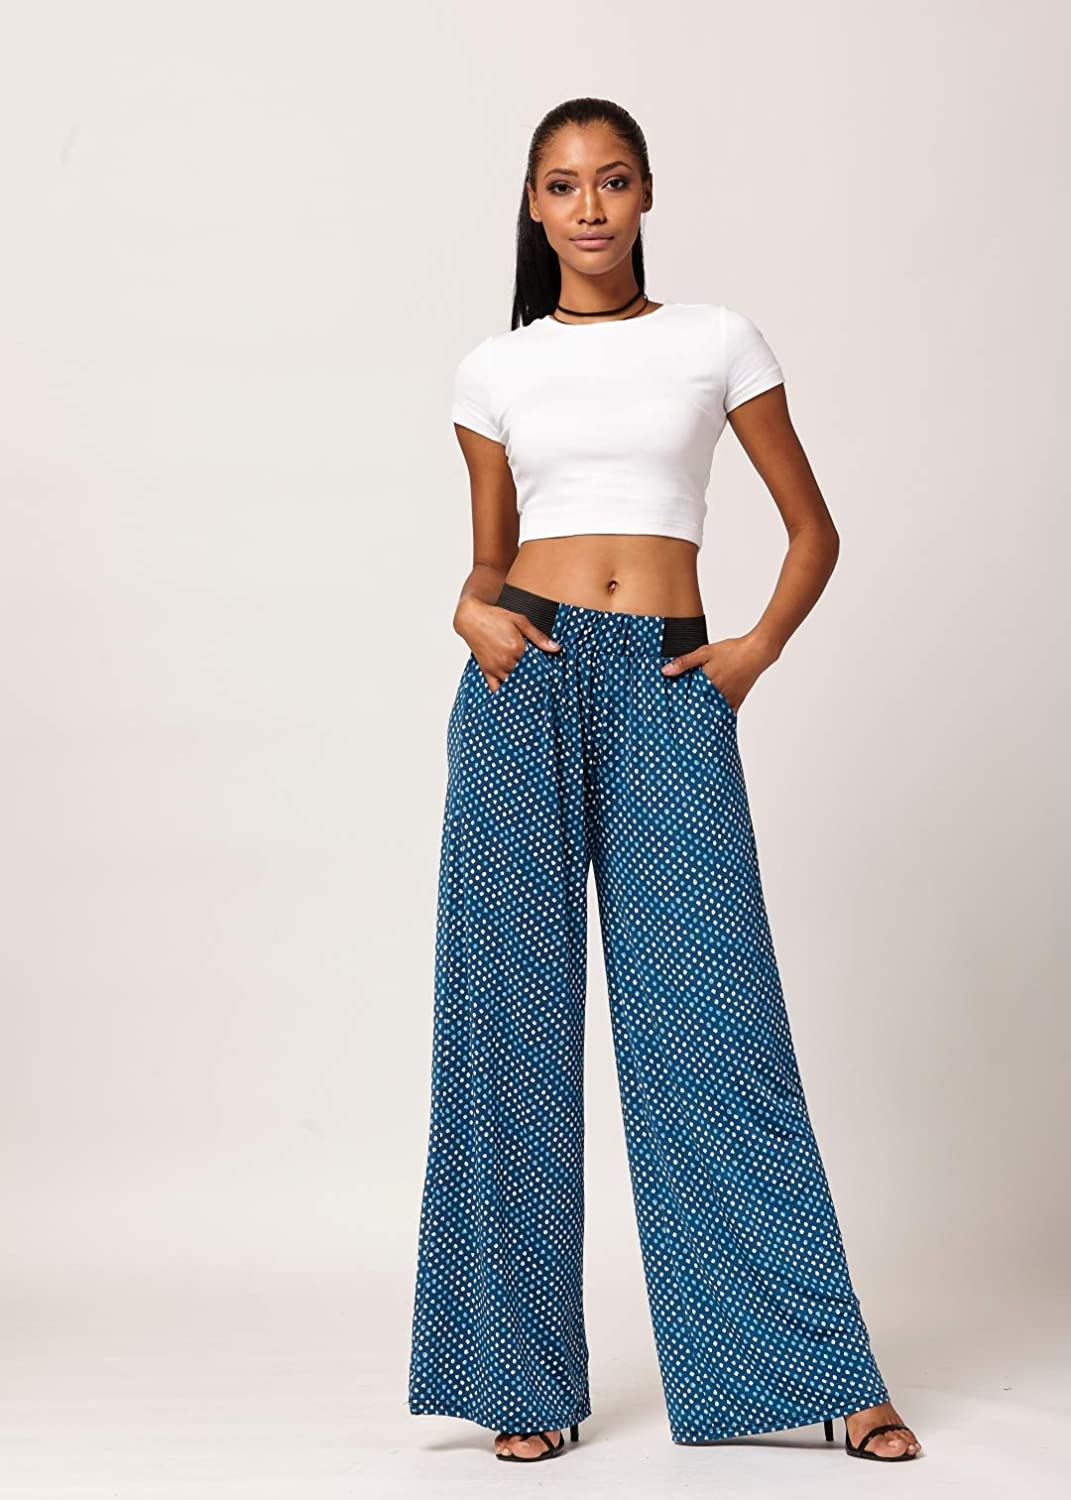 High Waist Conceited Premium Womens Palazzo Pants with Pockets Solid and Printed Designs